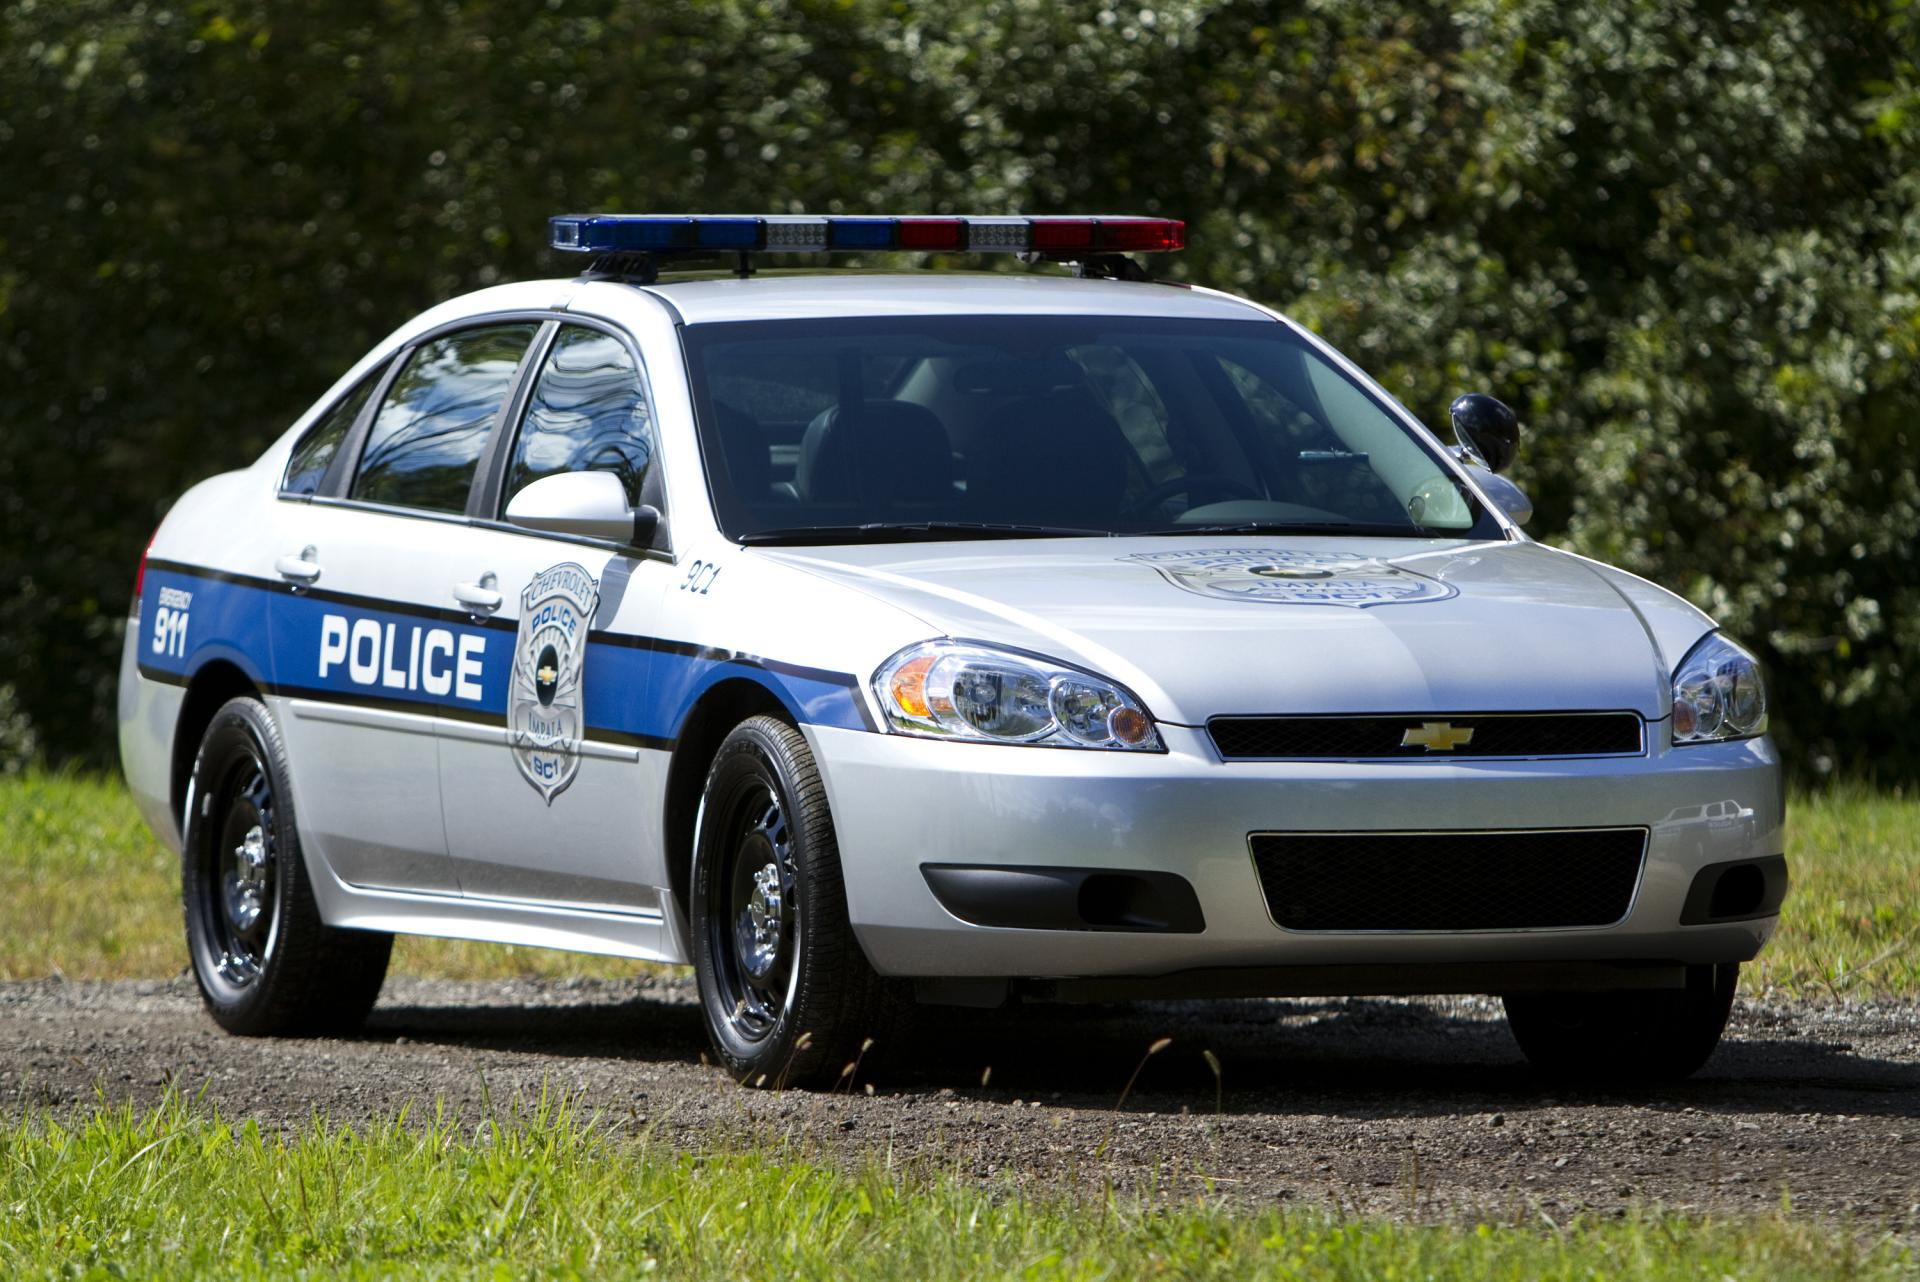 2013 Chevrolet Impala Ppv News And Information